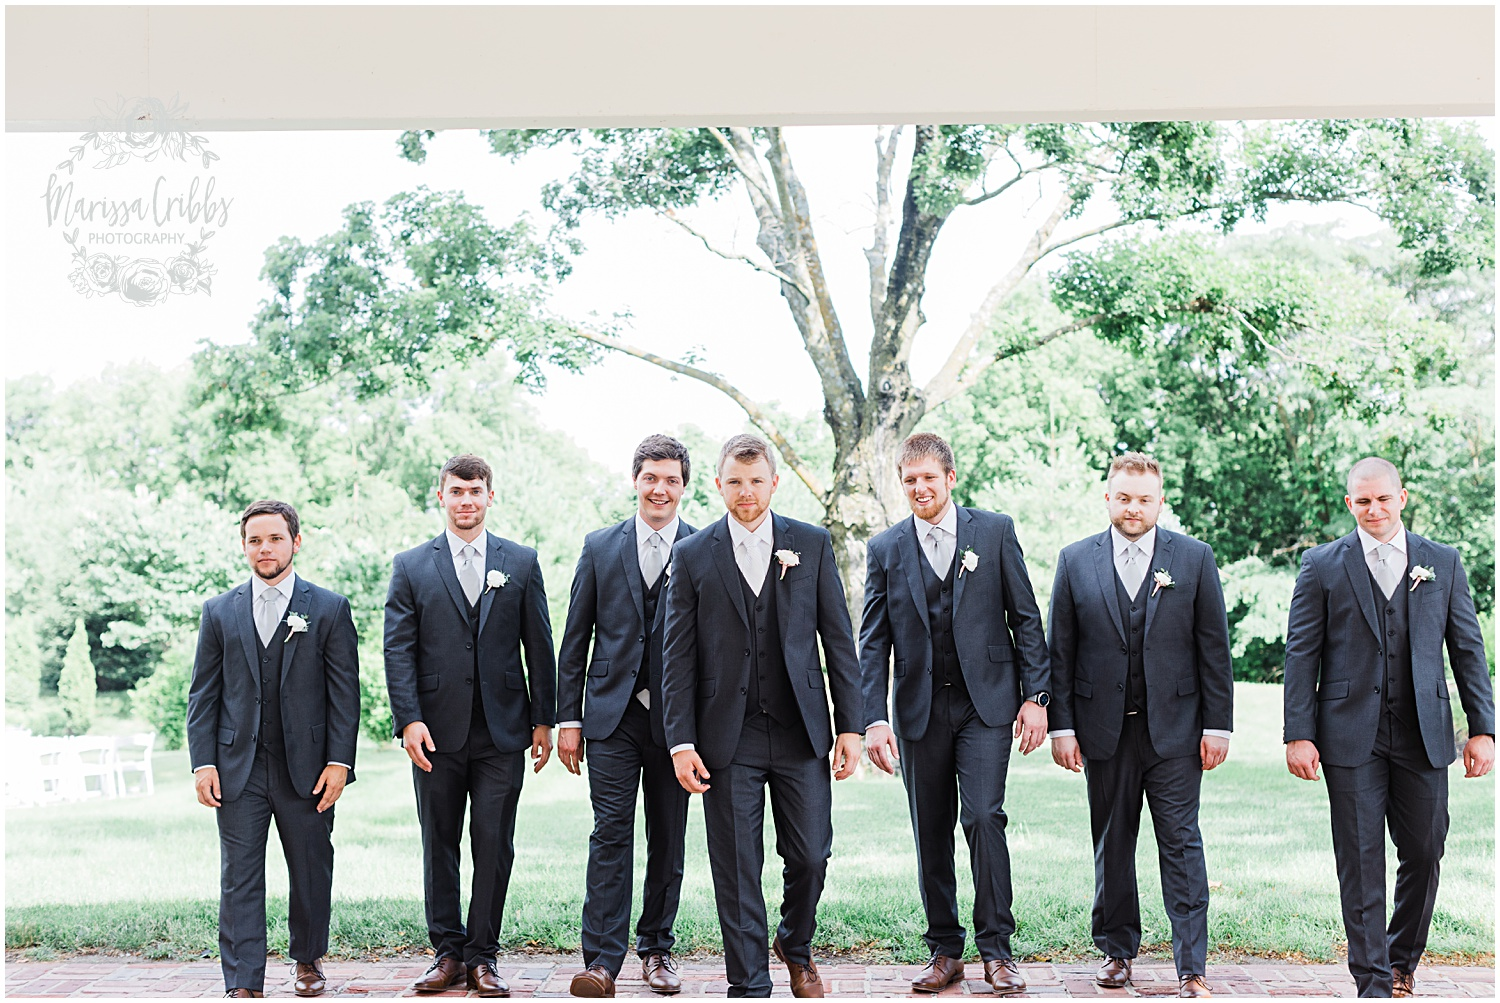 BEKAH & CHRIS MARRIED BLOG | 1890 EVENT SPACE WEDDING | MARISSA CRIBBS PHOTOGRAPHY_8359.jpg